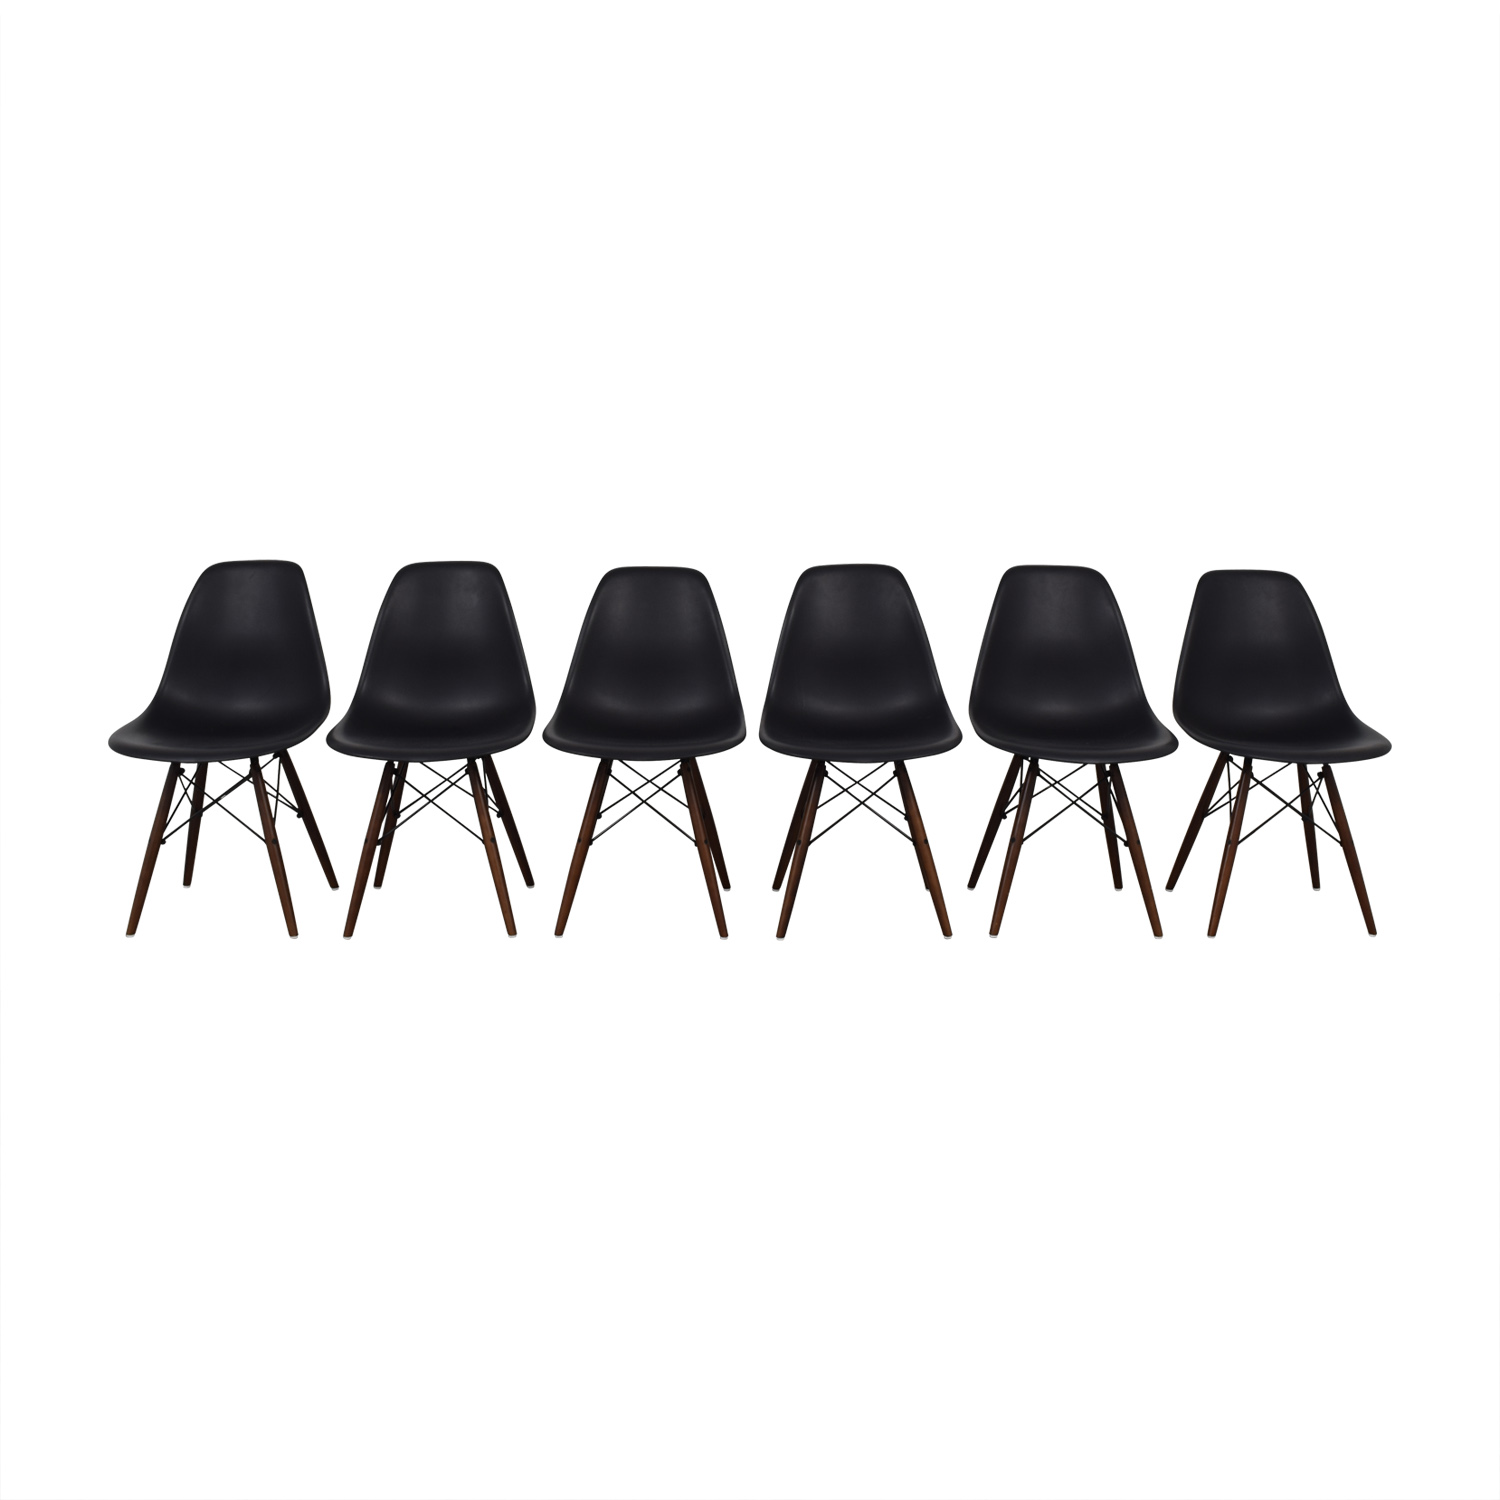 buy Poly & Bark Poly & Bark Black Dining Chairs online